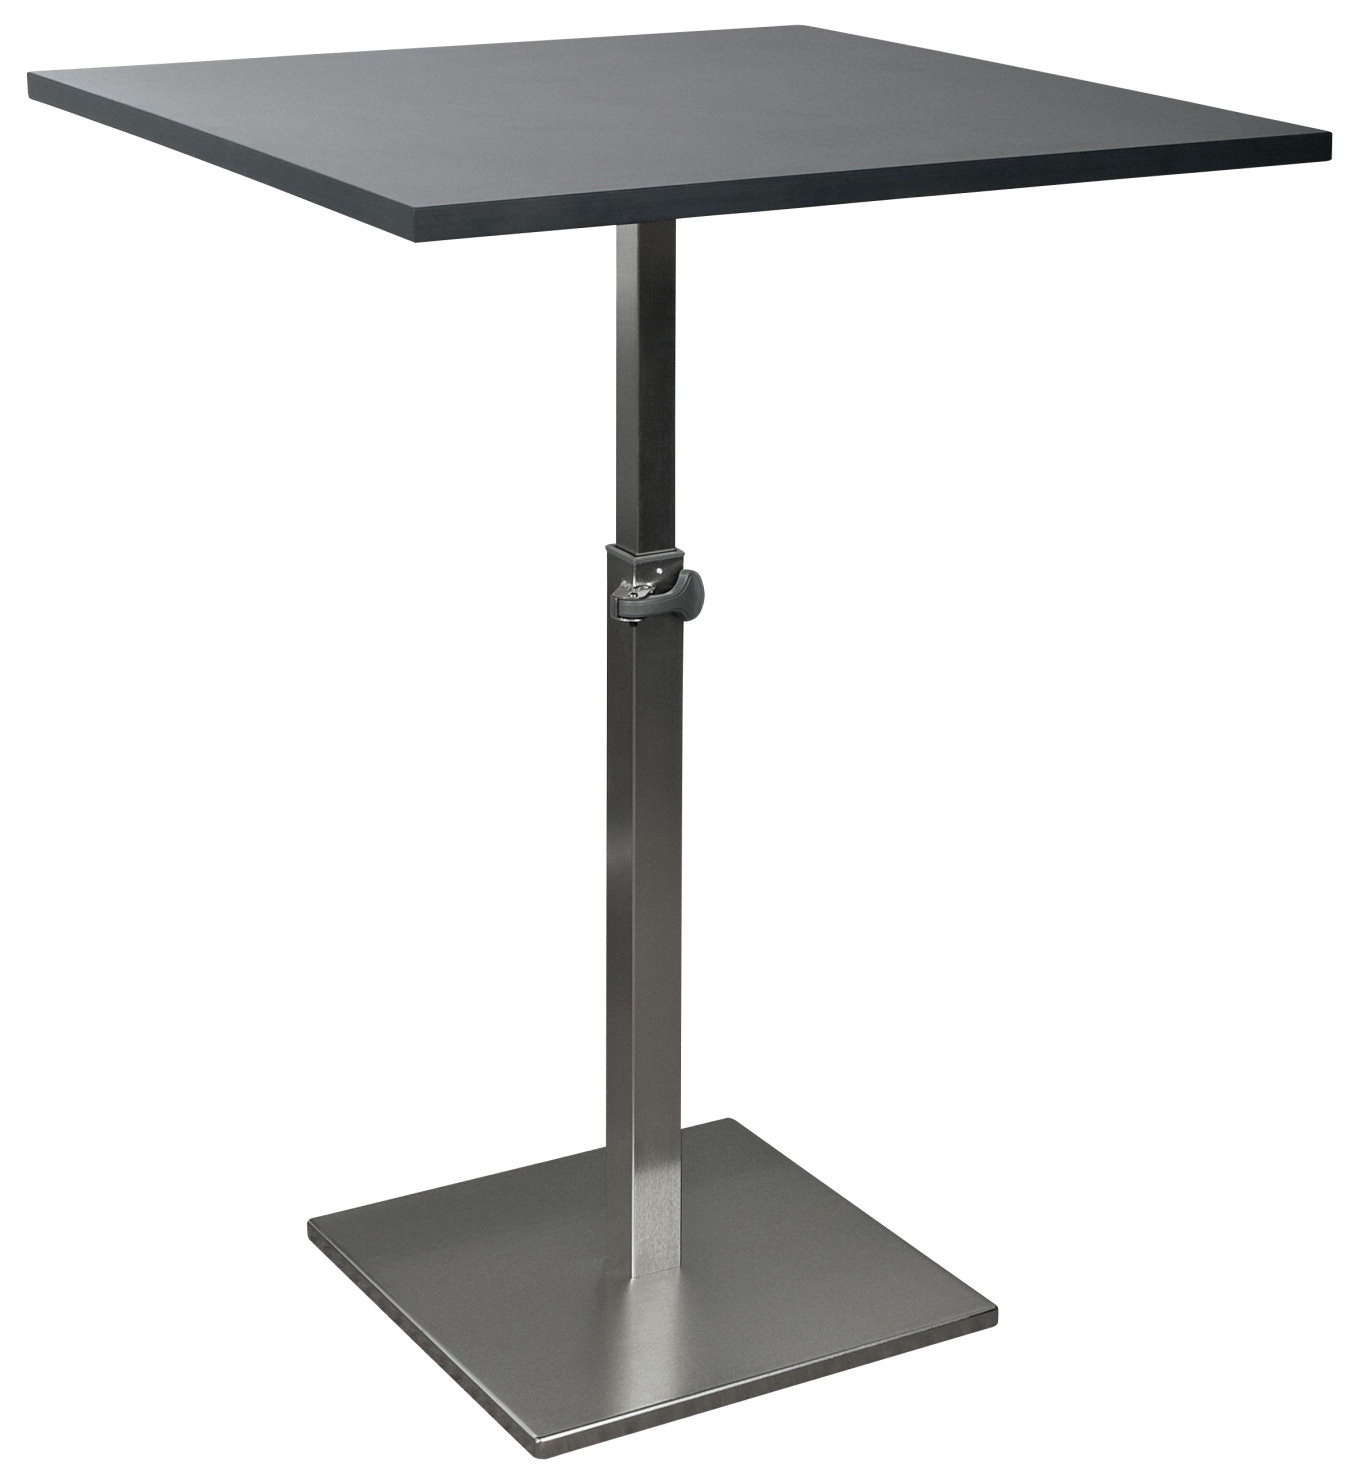 Balt Adjustable Square Height Bistro Table, 31-1/2 Inch, 30 - 43-1/2 Inches High, Black